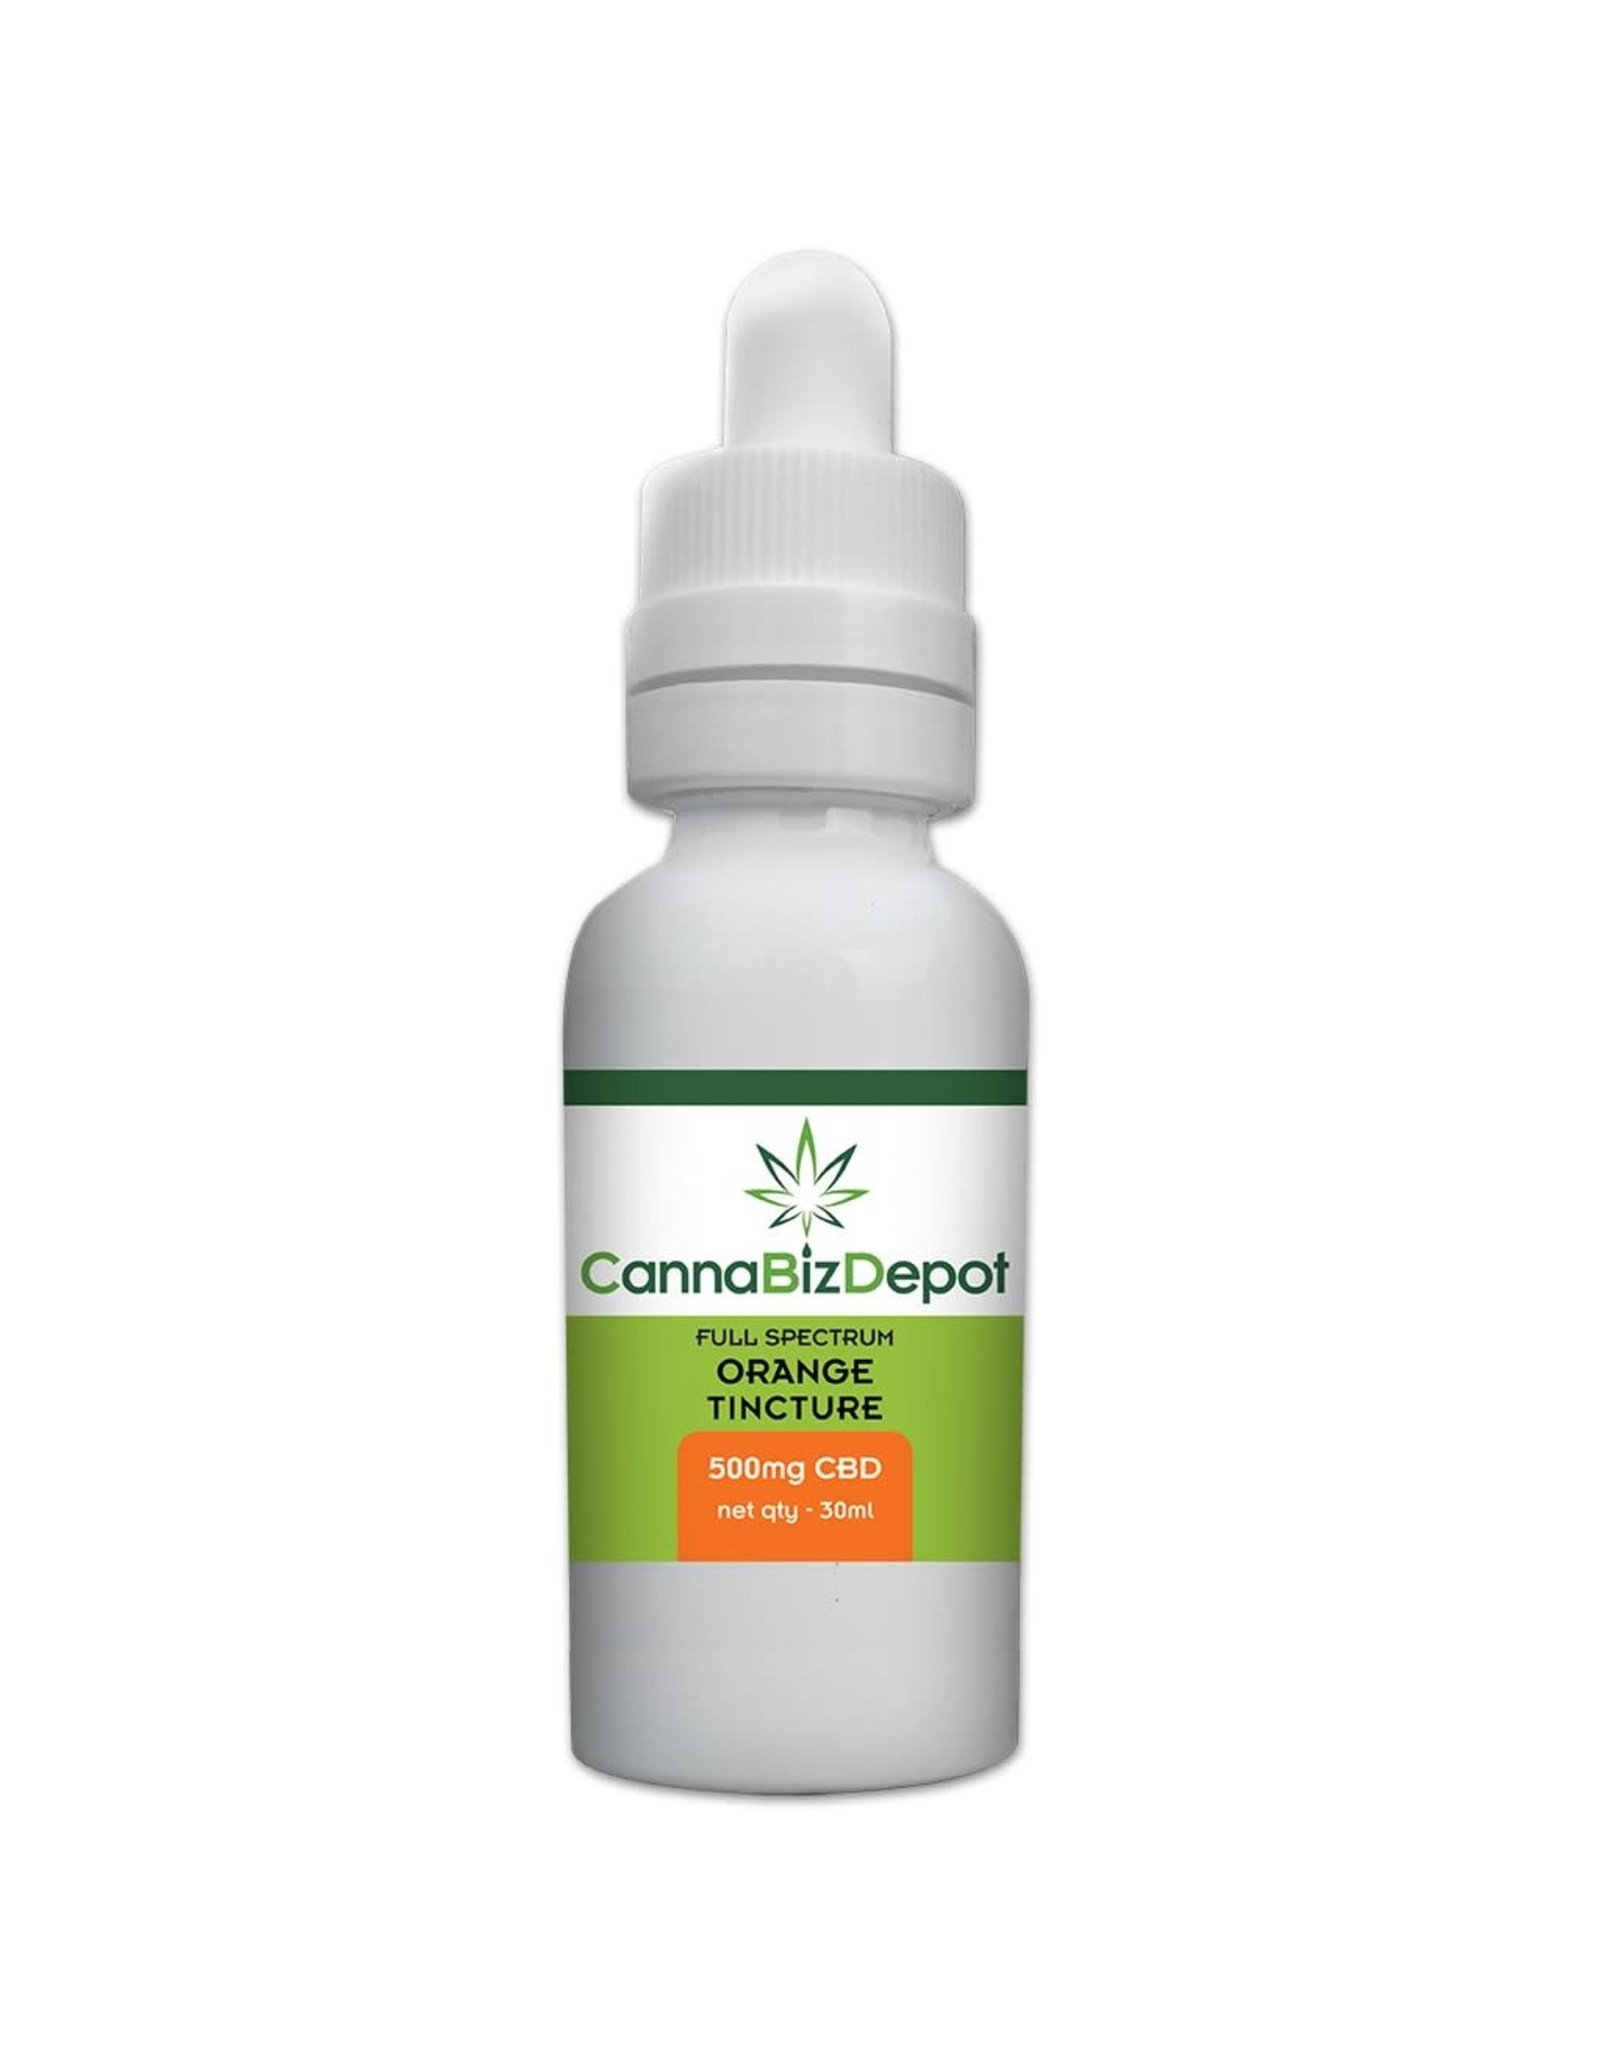 CannaBiz Depot CannaBiz Depot 500mg 30ml Full Spectrum Tincture